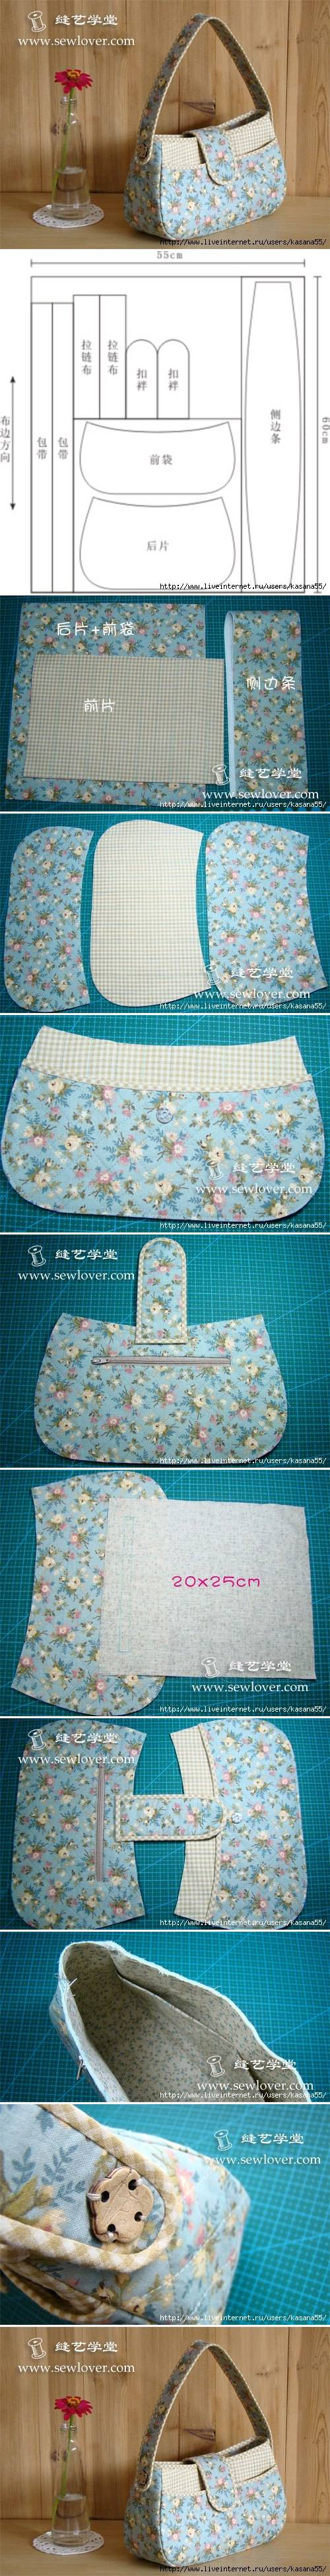 How to make Pretty Fashion Purse step by step DIY tutorial instructions